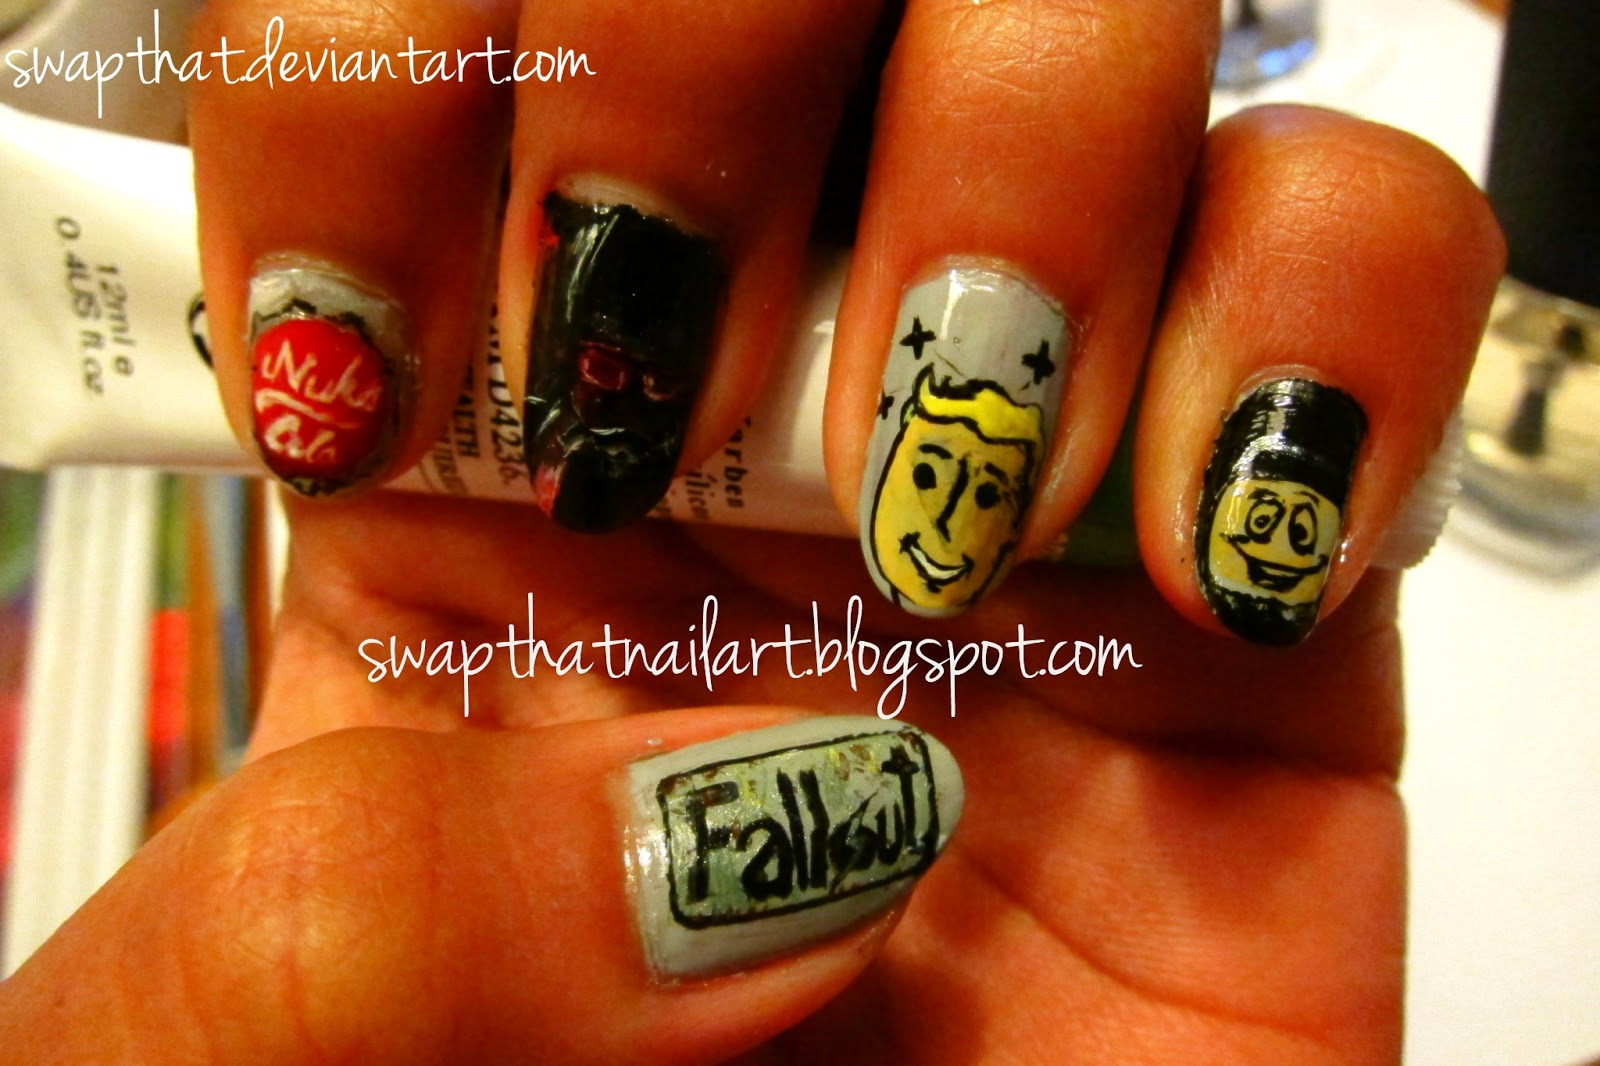 I Love Fallout Wandering In Wasteland And Drinking Nuka Cola Had Made It With Acrly Hope You Will Enjoy These Nails So Includes